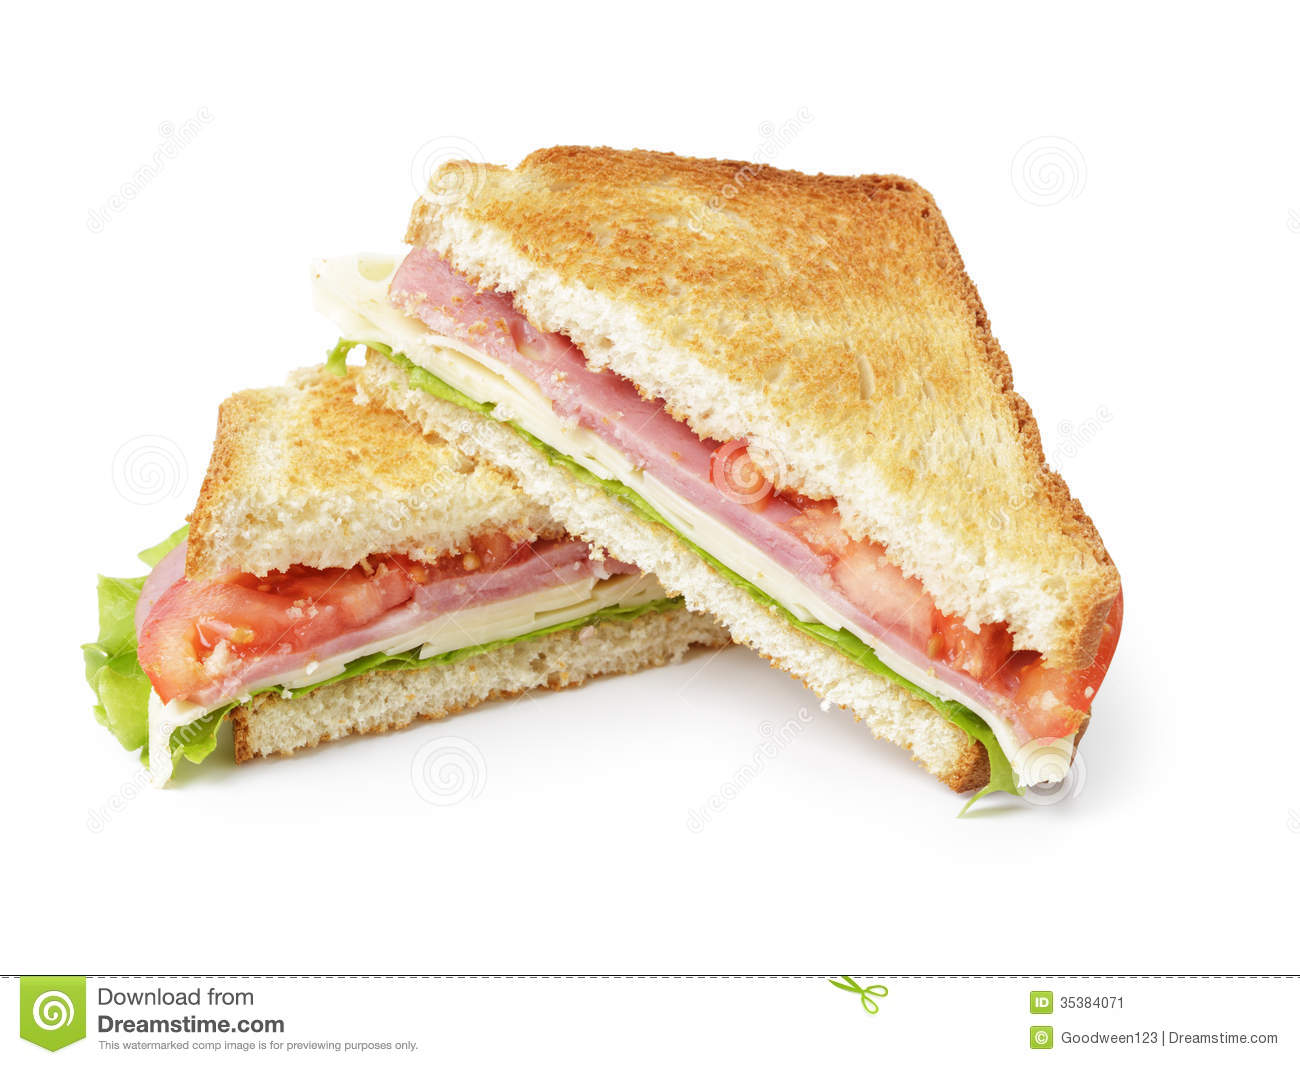 Toasted Sandwich With Ham, Cheese And Vegetables Stock Image - Image ...